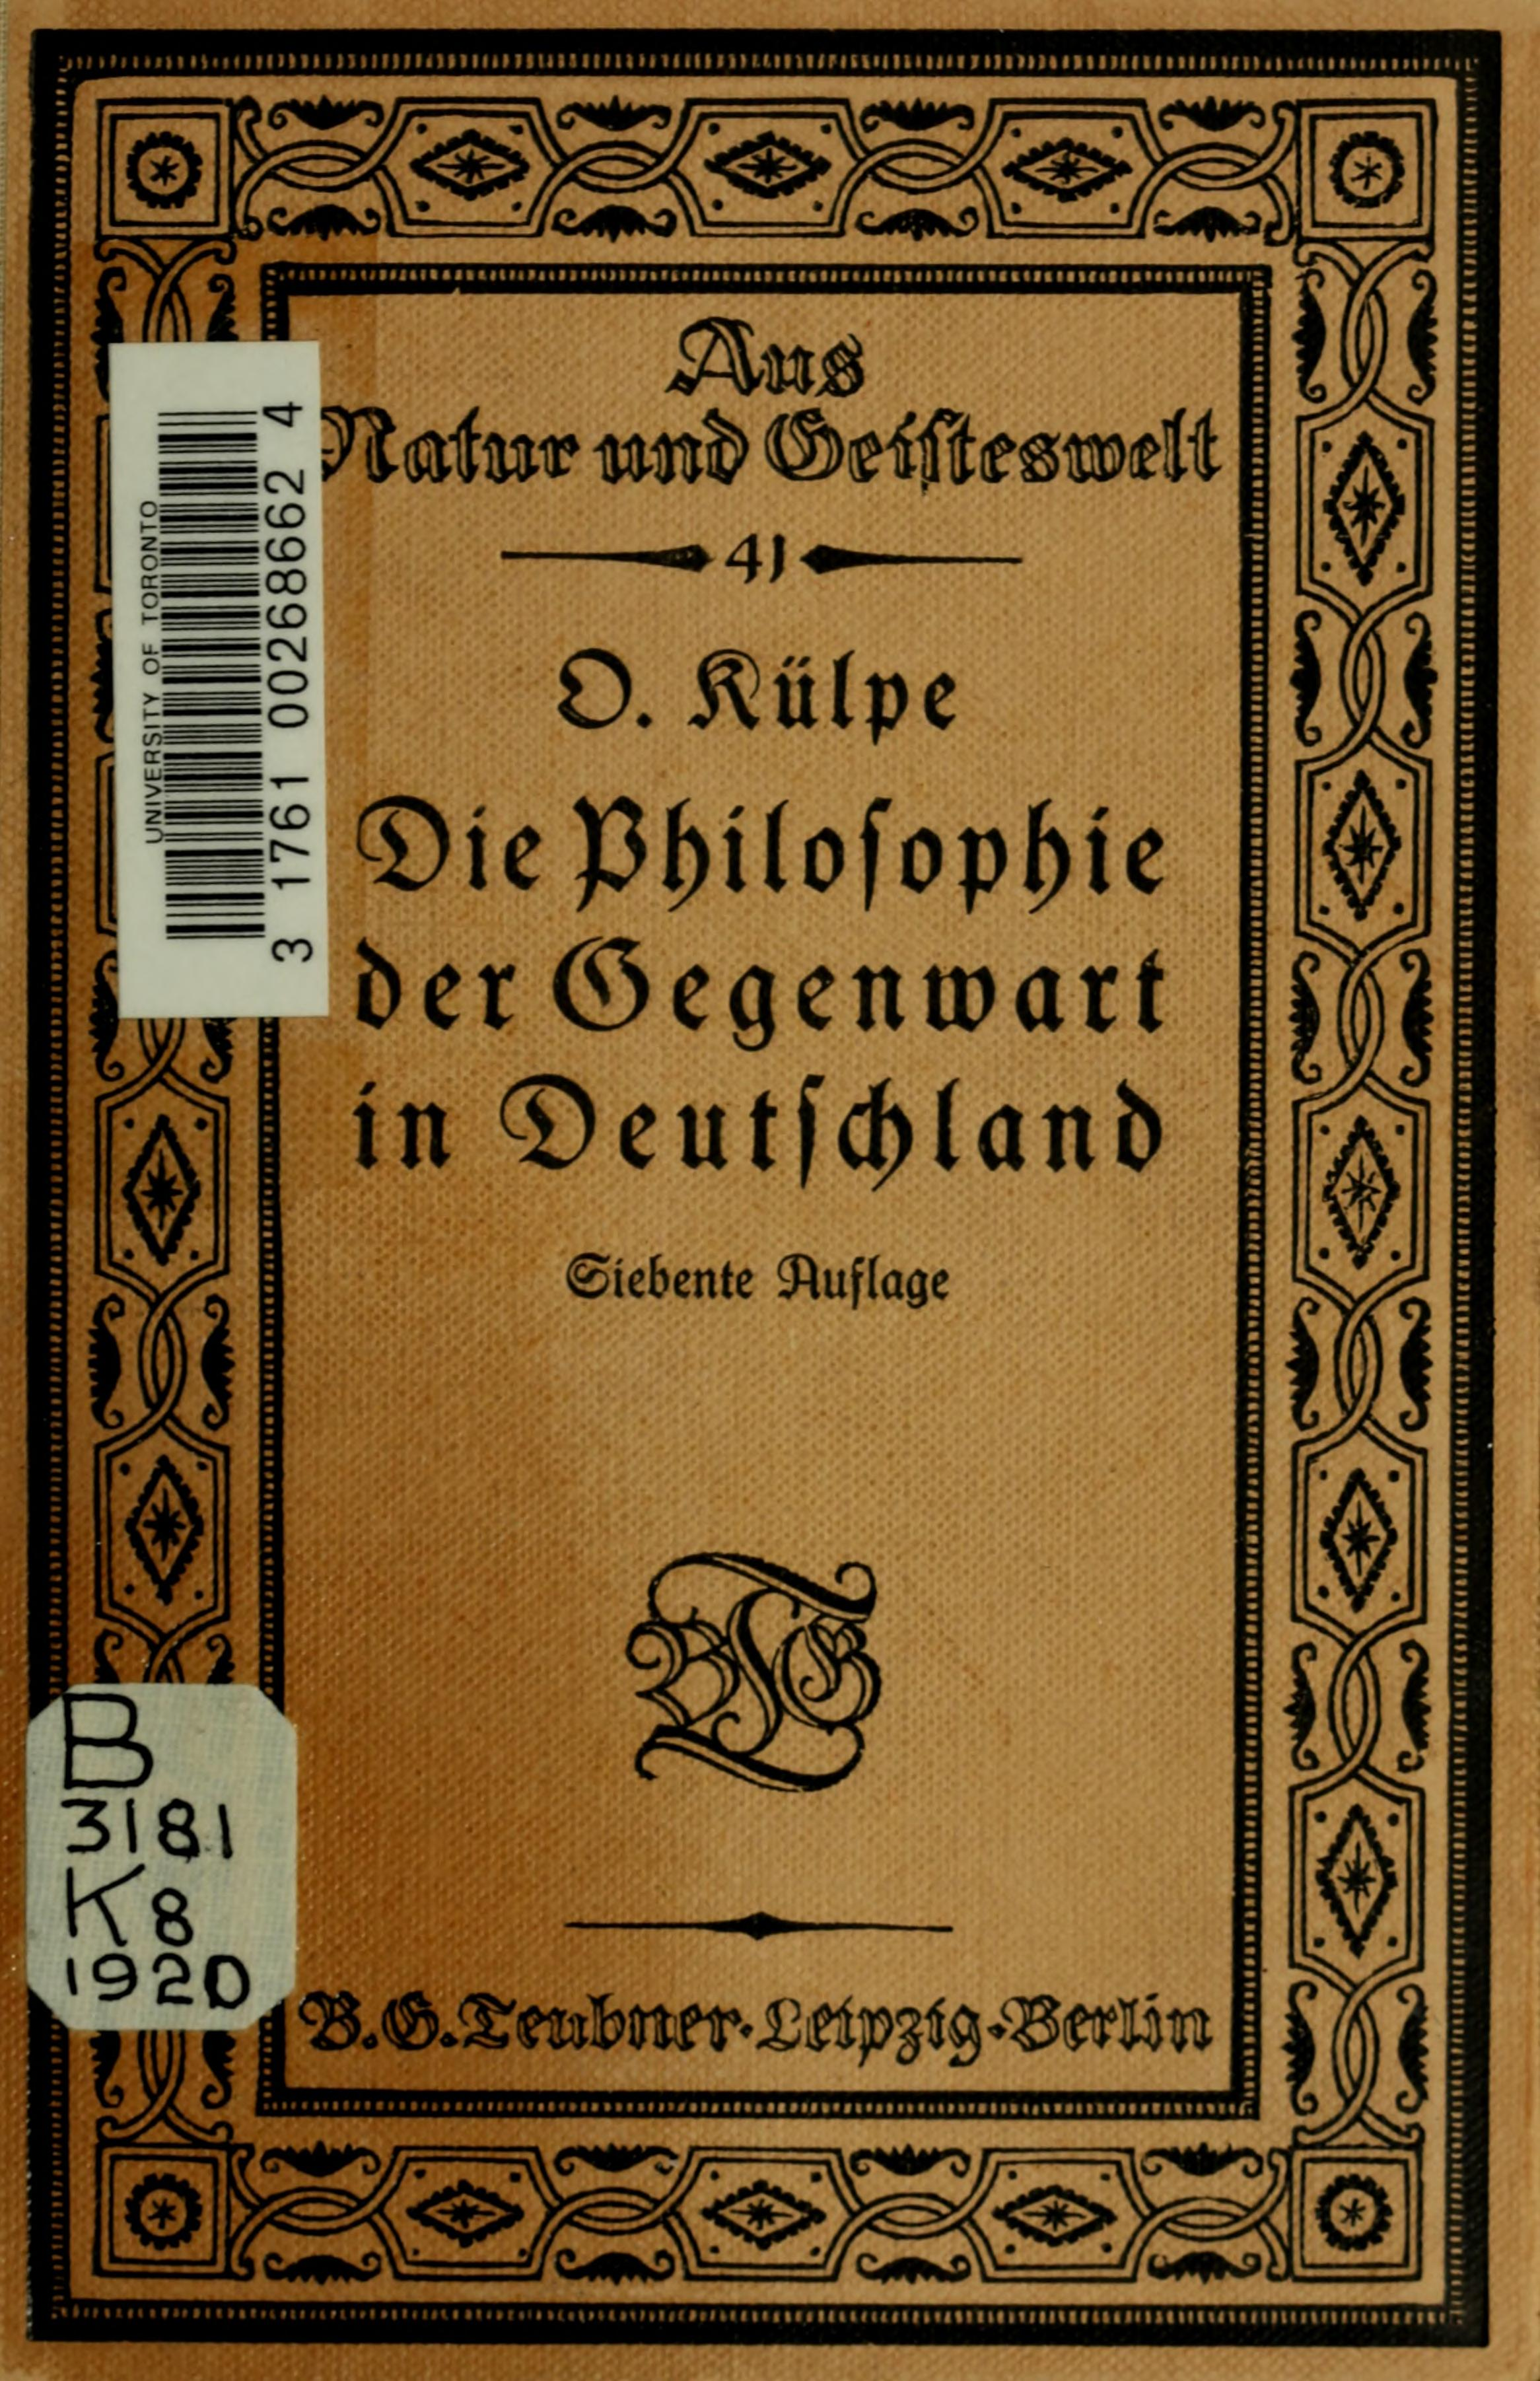 diephilosophiede00kl&server=ia600304.us.archive.org&page=preview&